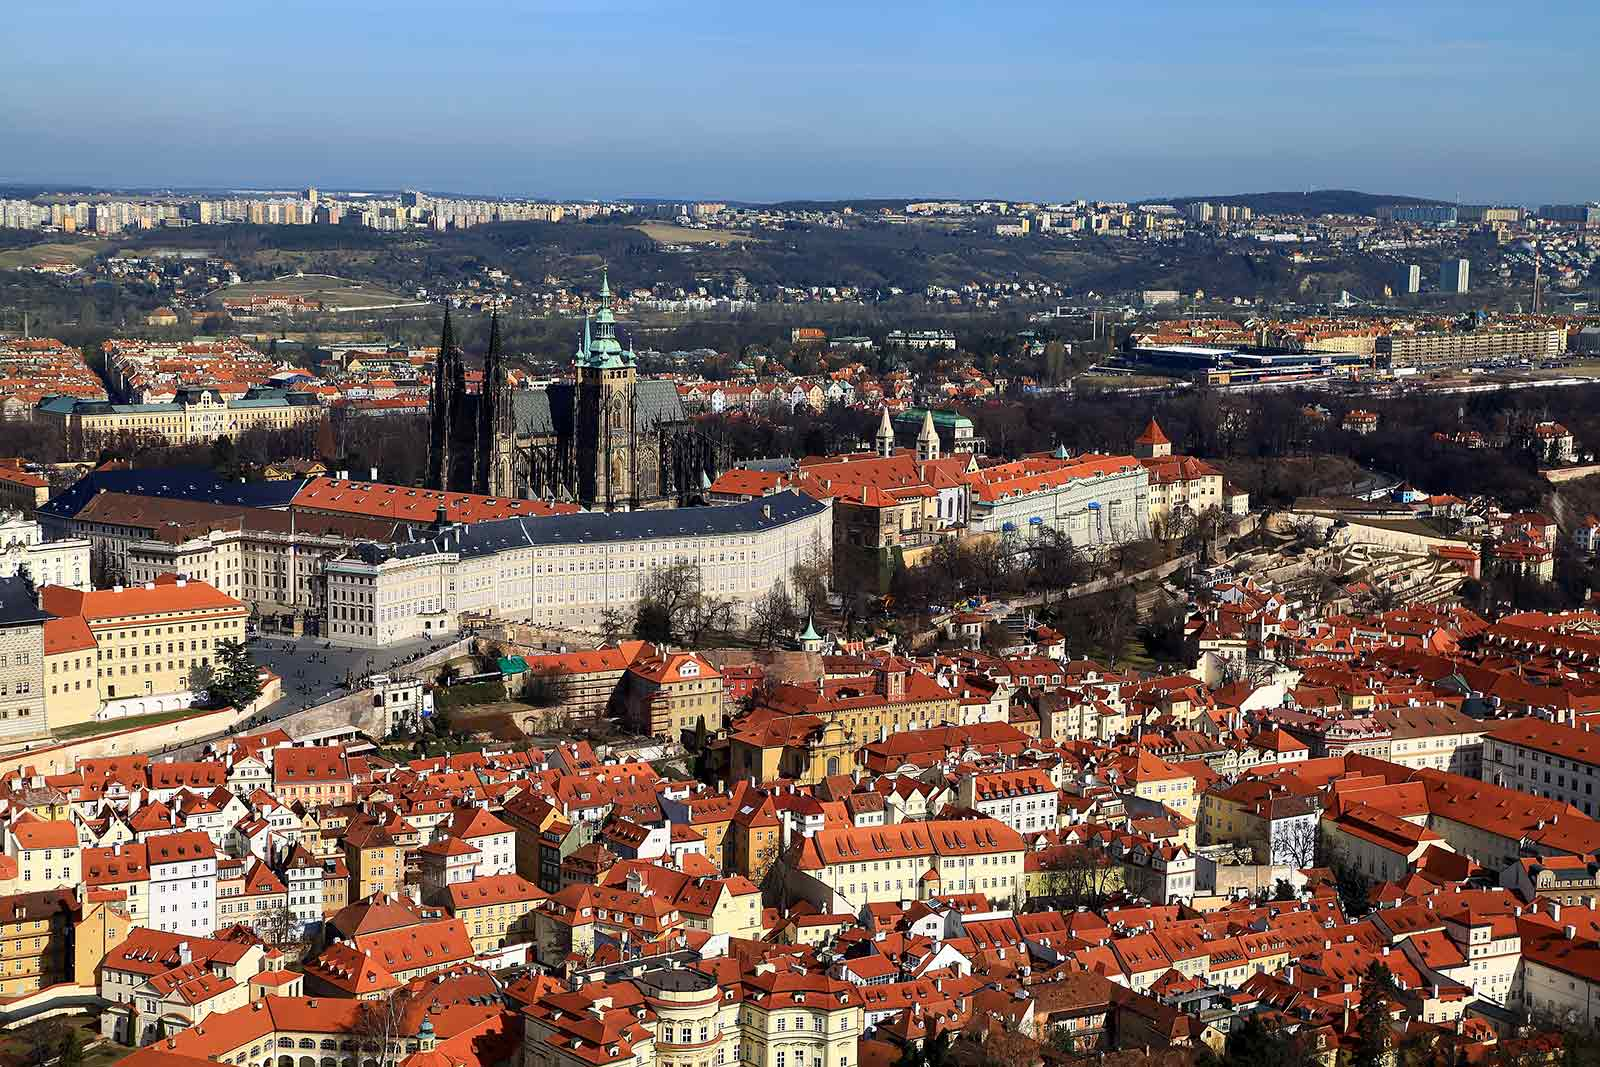 The view of Prague Castle and St. Vitus Cathedral from Petrin Tower.